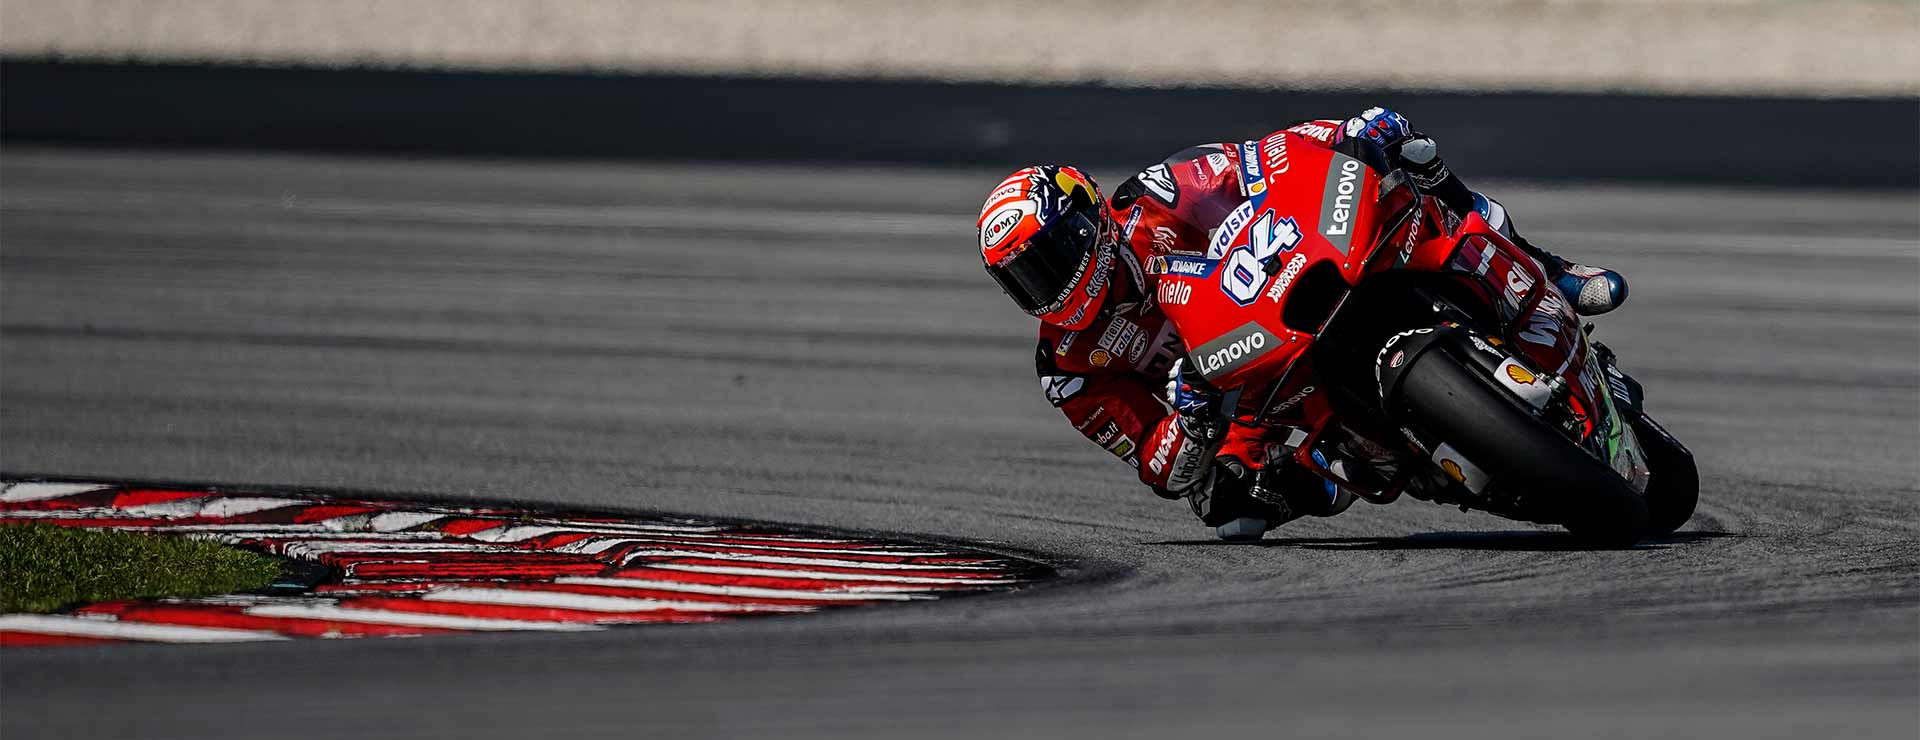 27 milliseconds between winning and losing: How technology is changing MotoGP